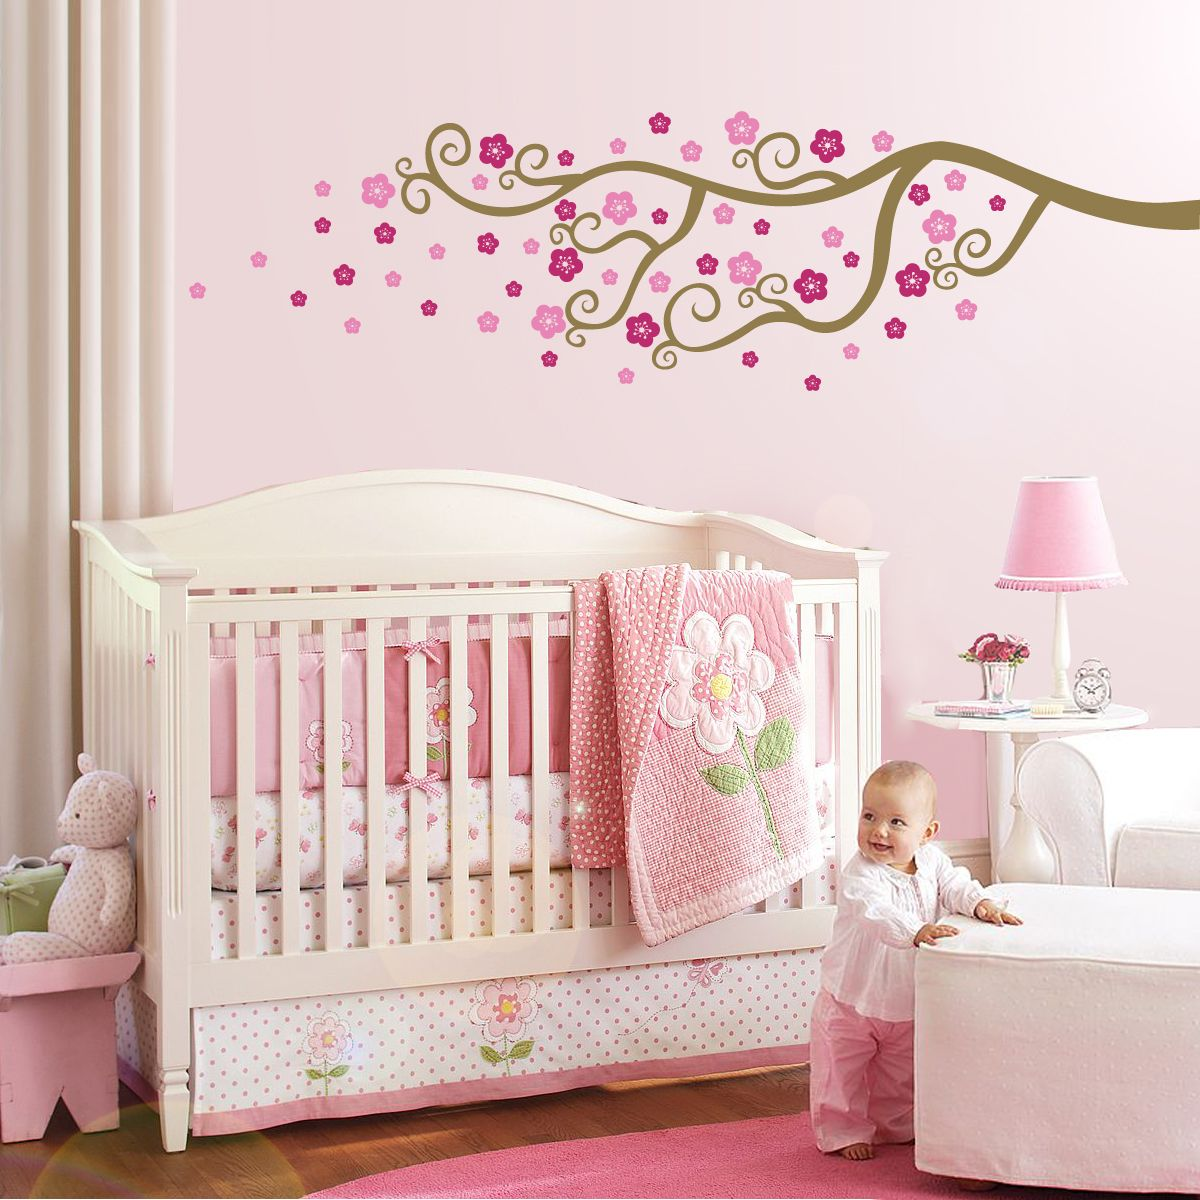 Bedroom Paint Ideas Pink creative paint ideas for kids bedroom captivating pink tree wall